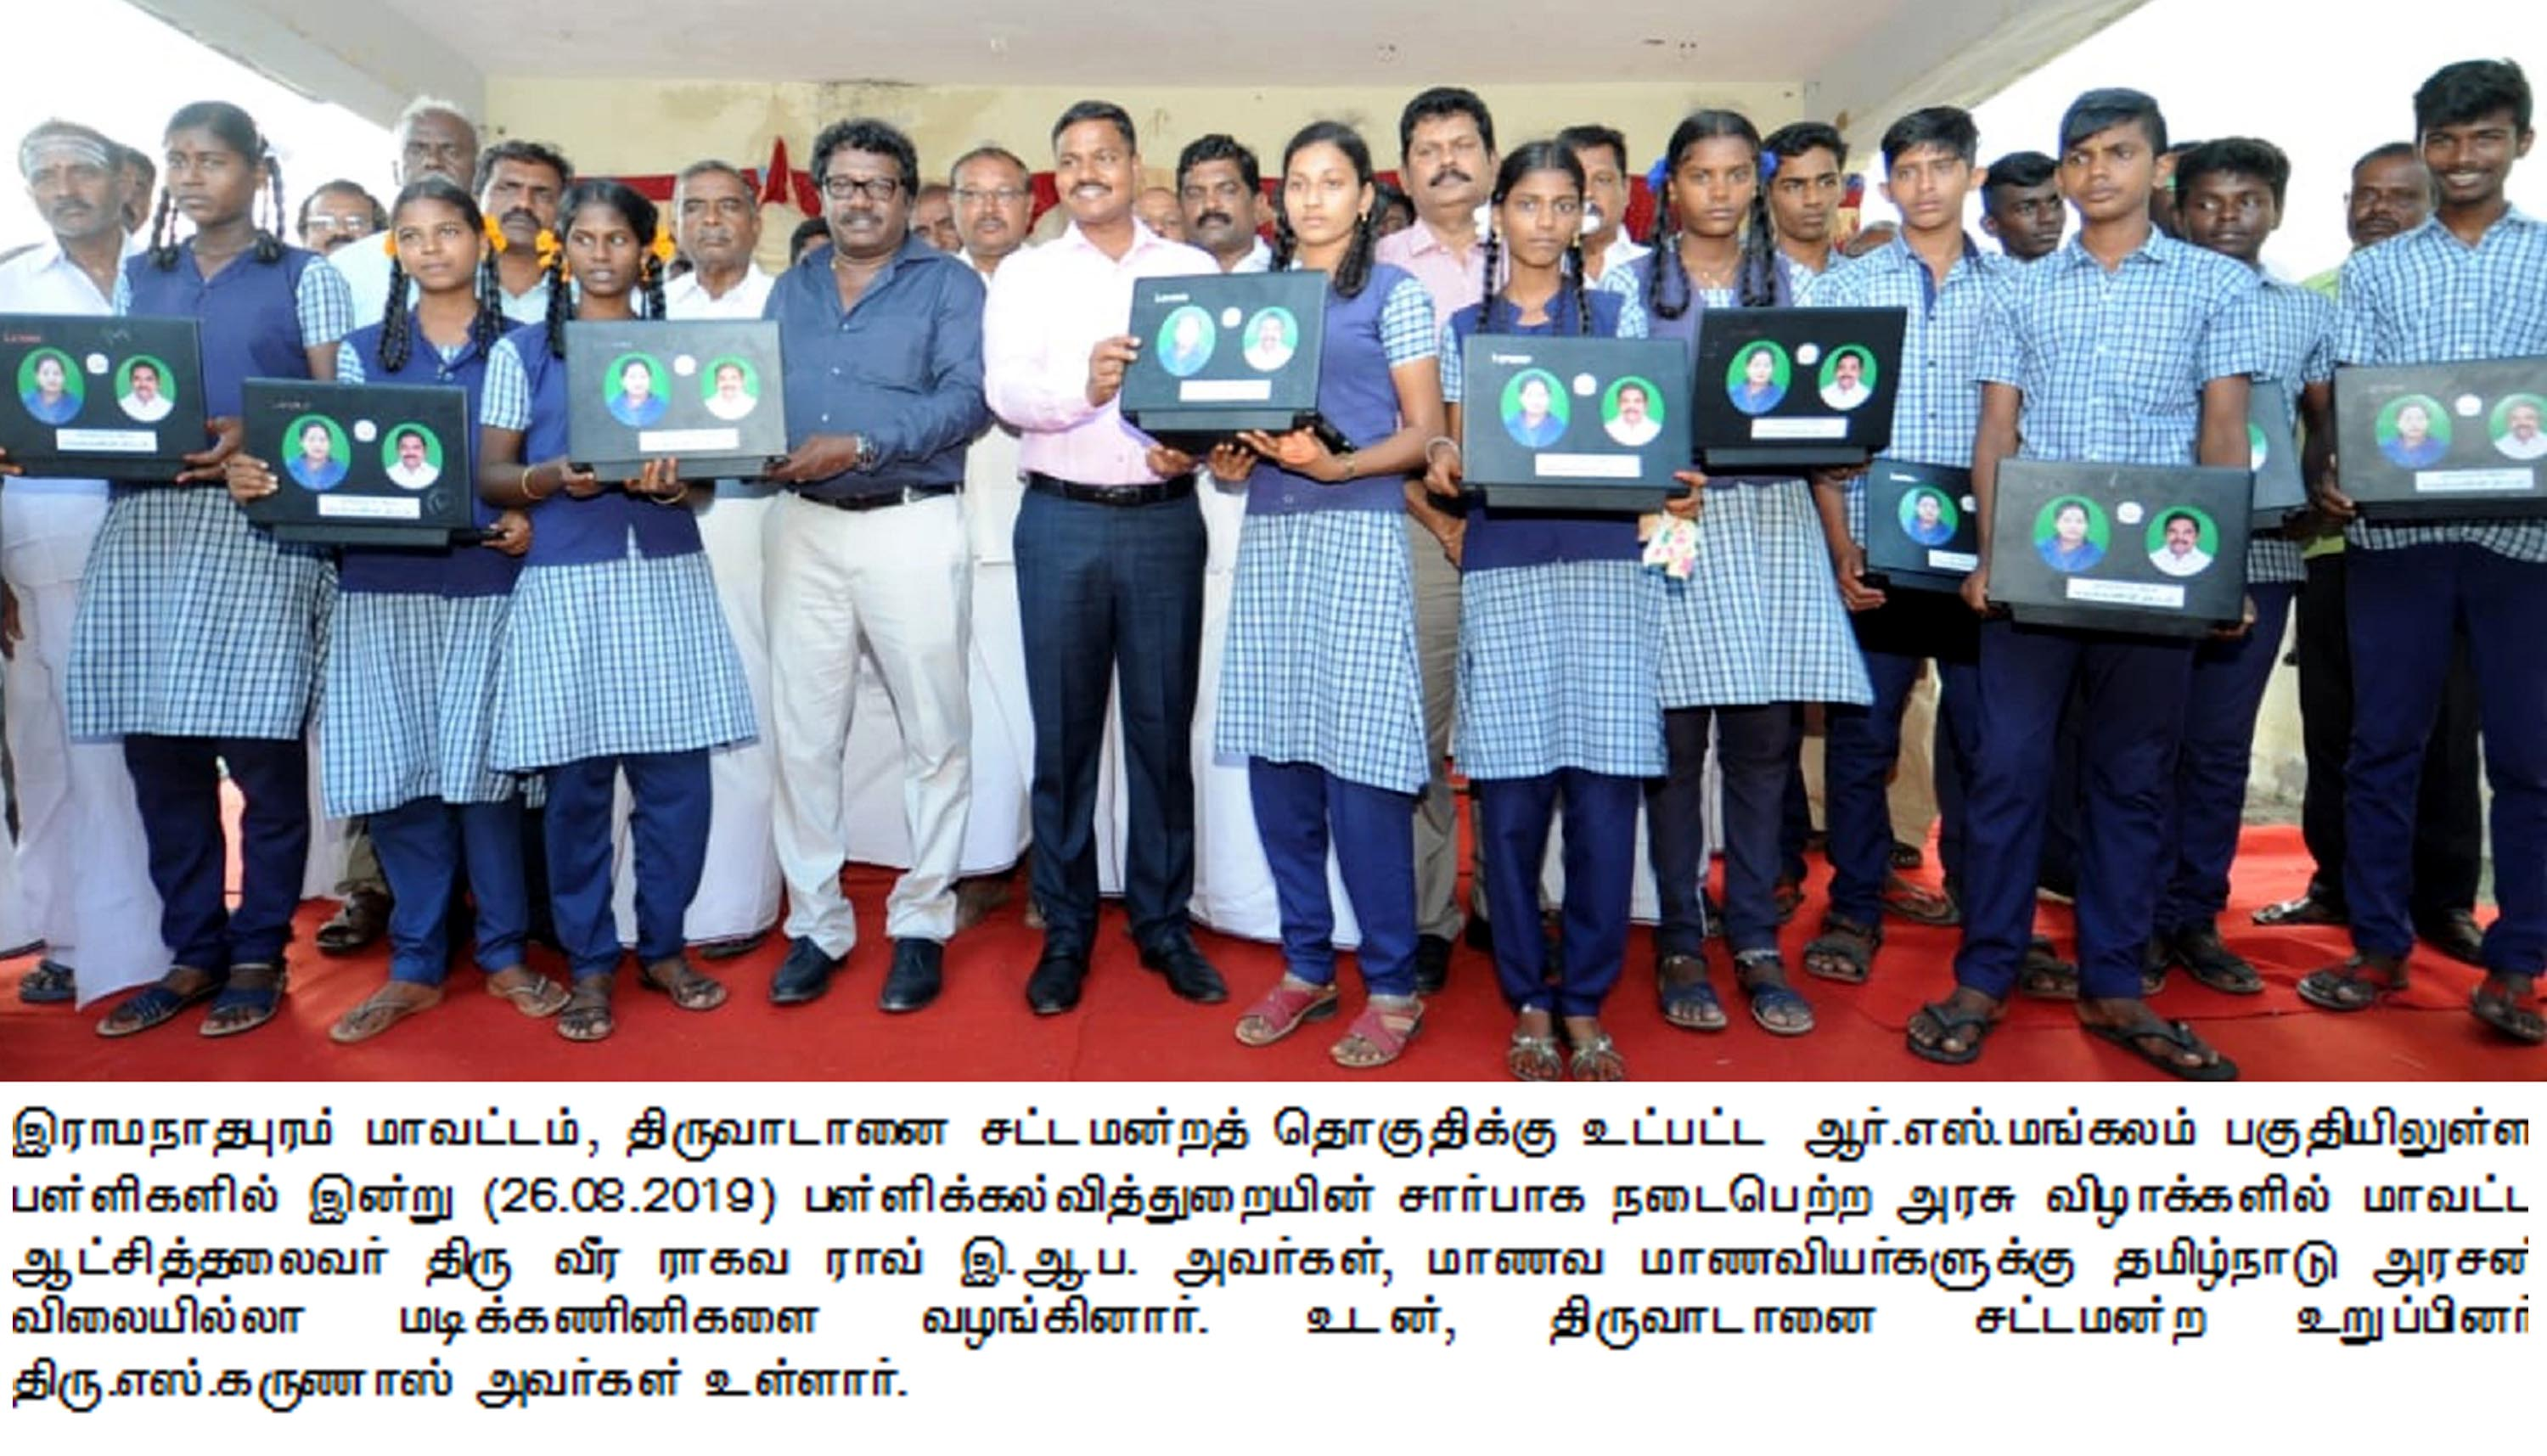 PR NO:41 LAPTOP DISTRIBUTION_26/08/2019